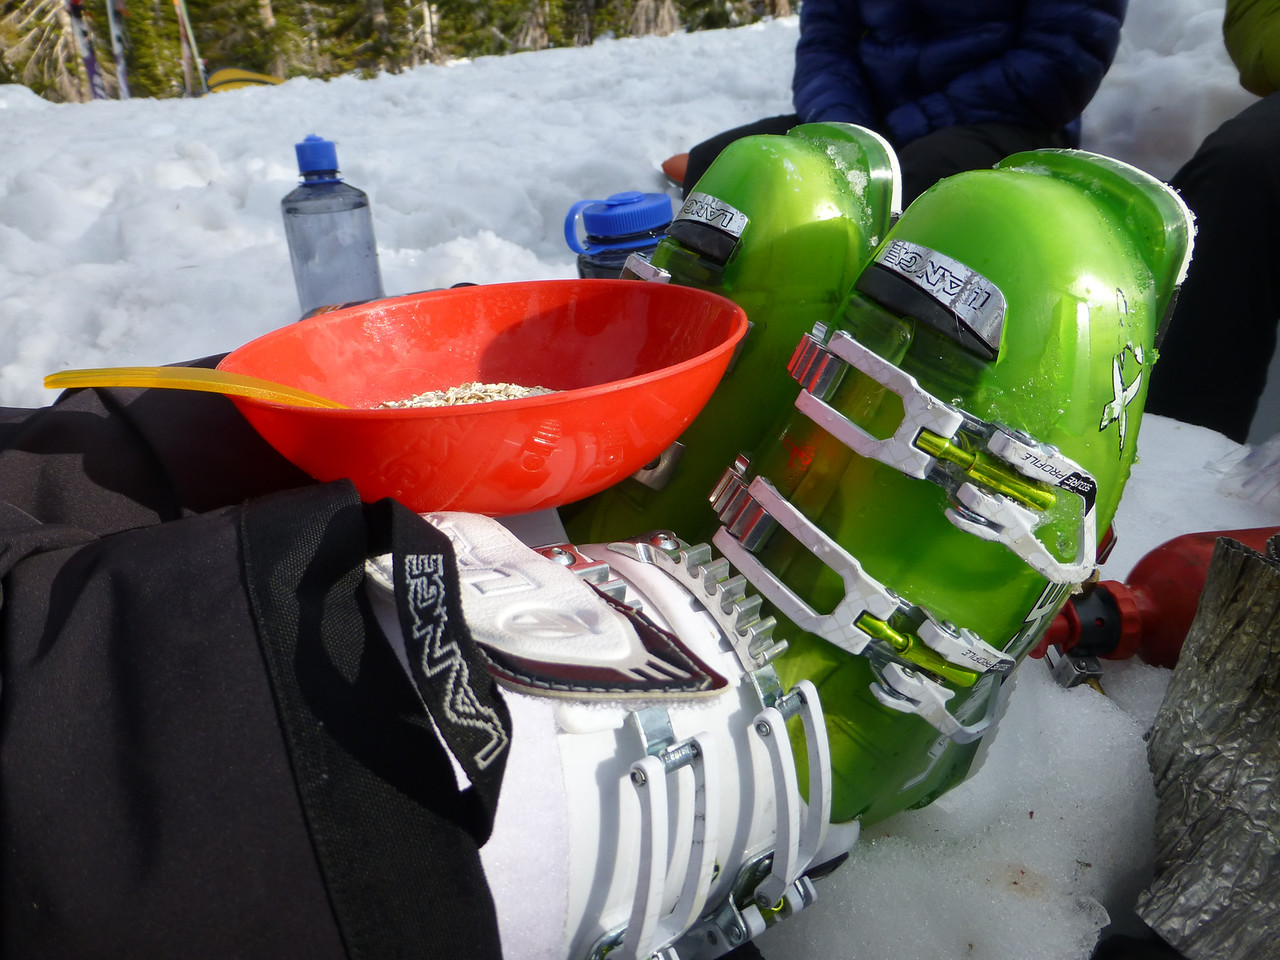 Did you know we serve meals on ski boots?